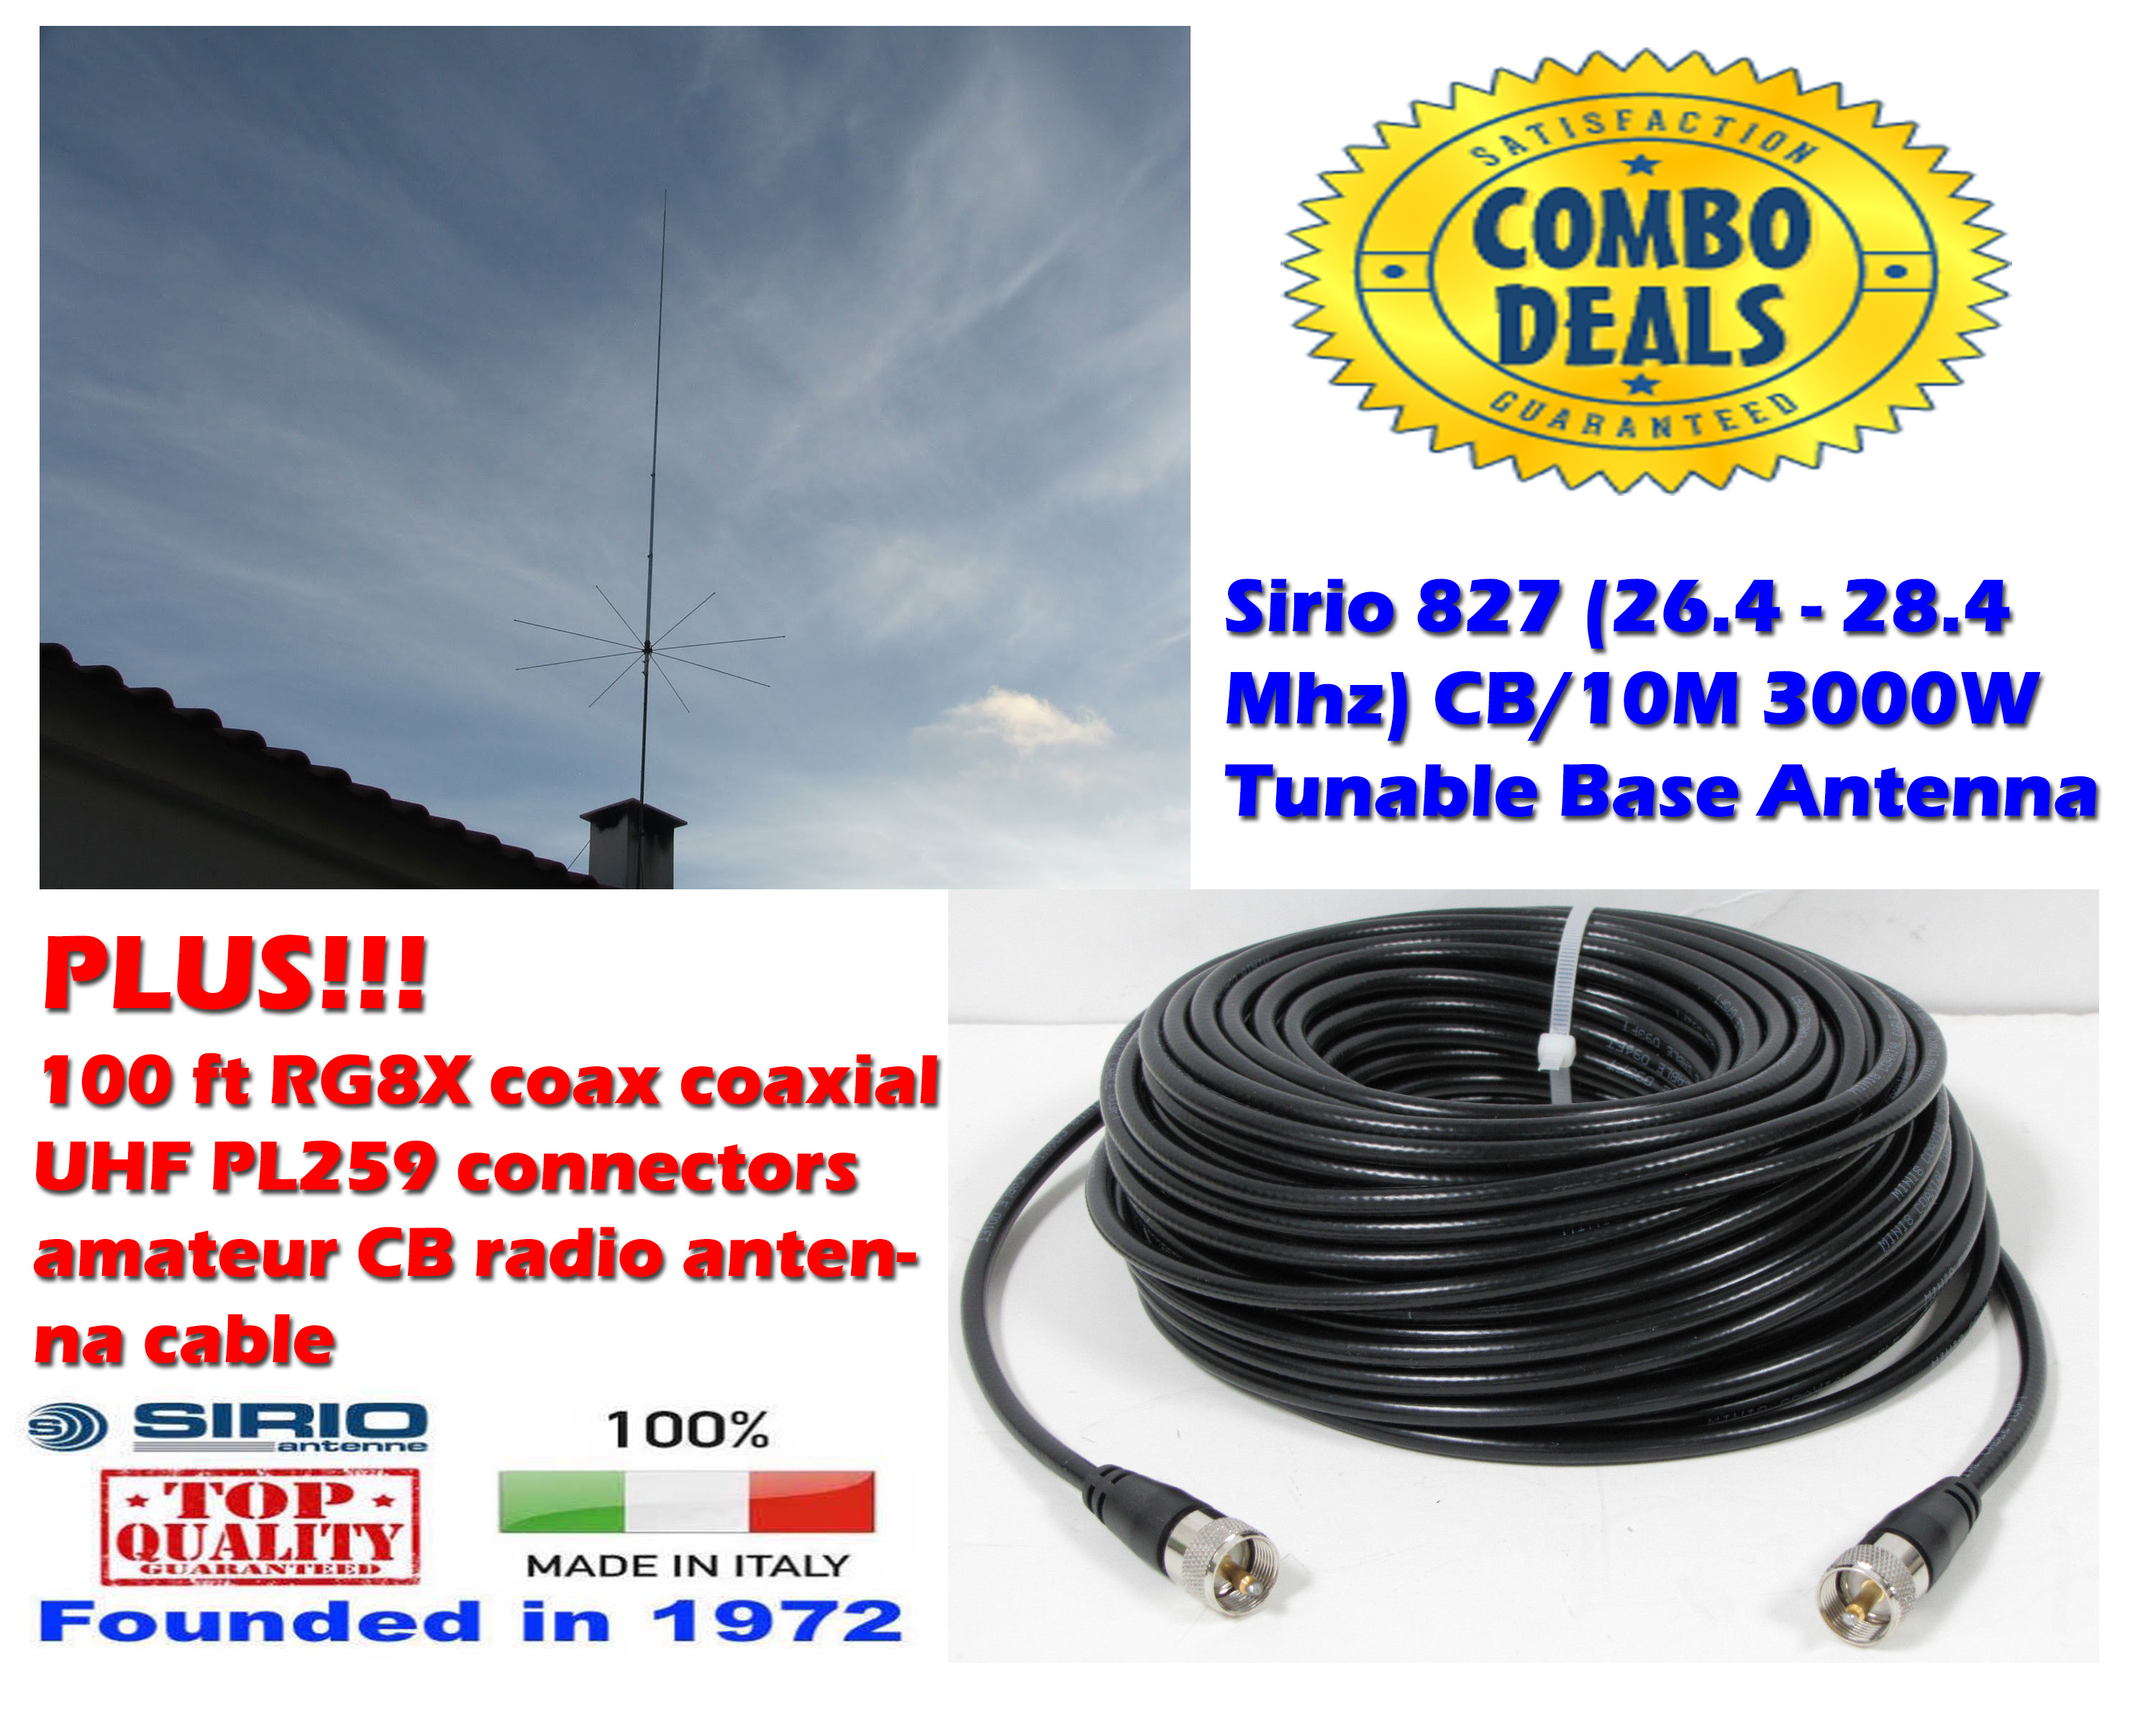 Sirio 827 10M-HAM 3000W Tunable Base Antenna with 100Ft Coax